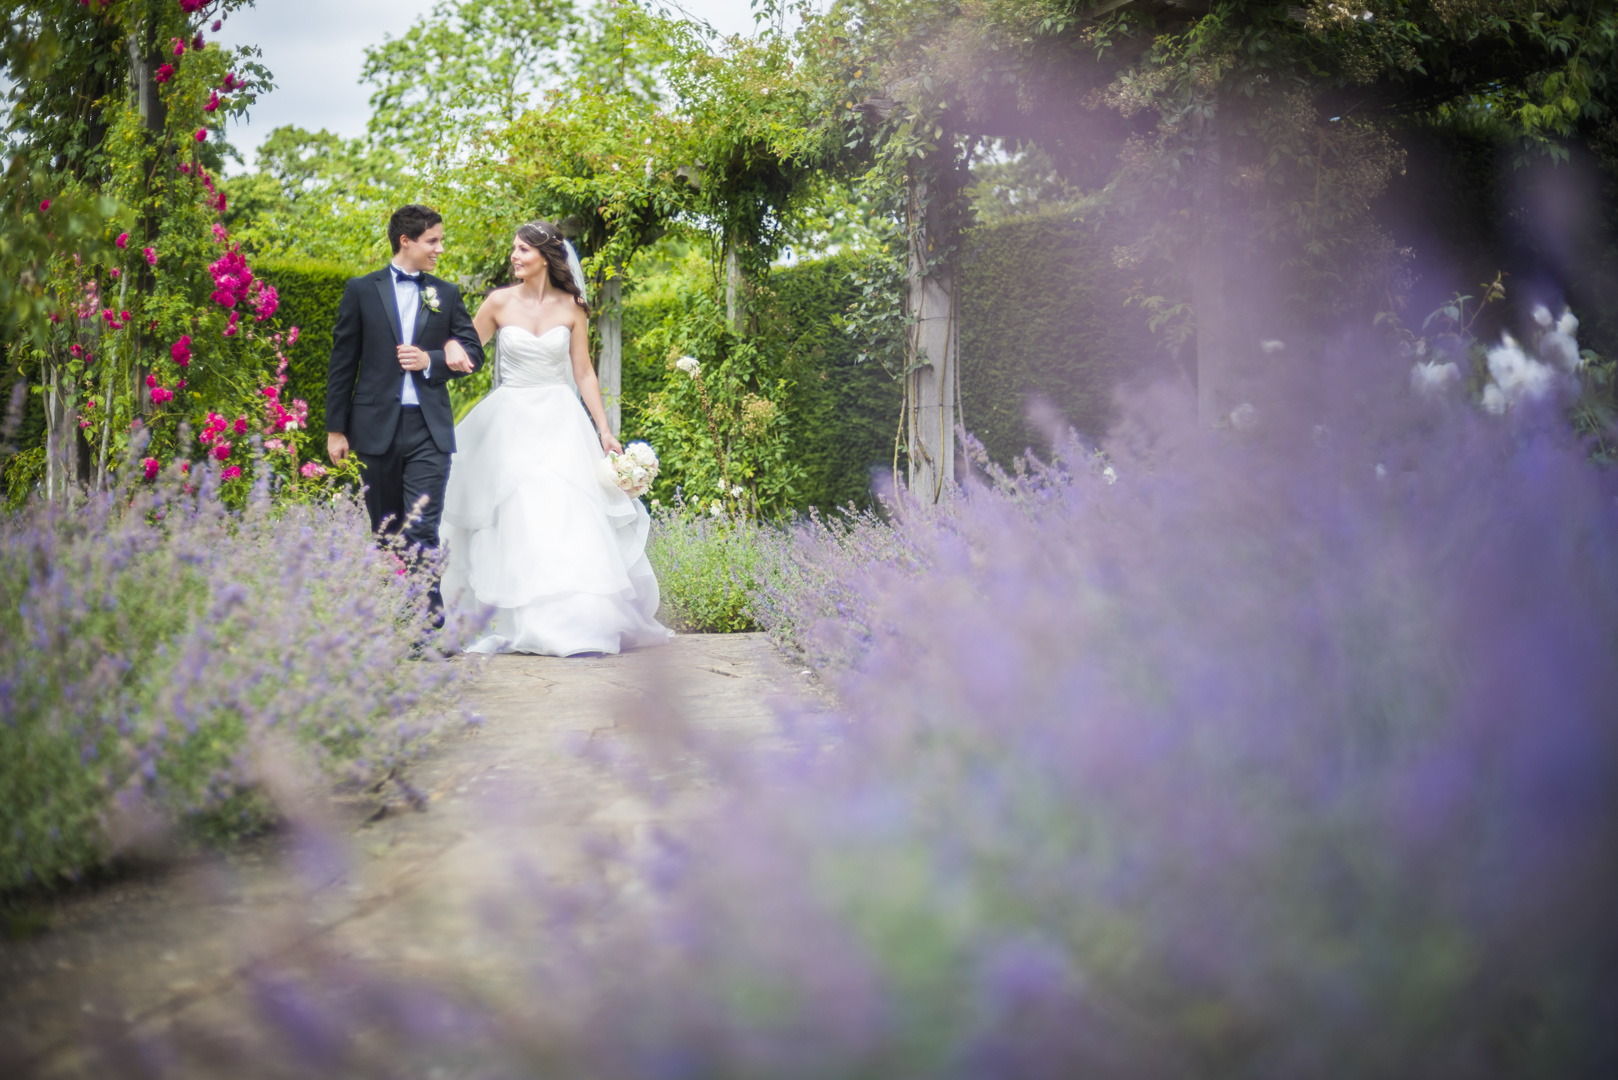 London Wedding Photographer Portfolio 14 of 26